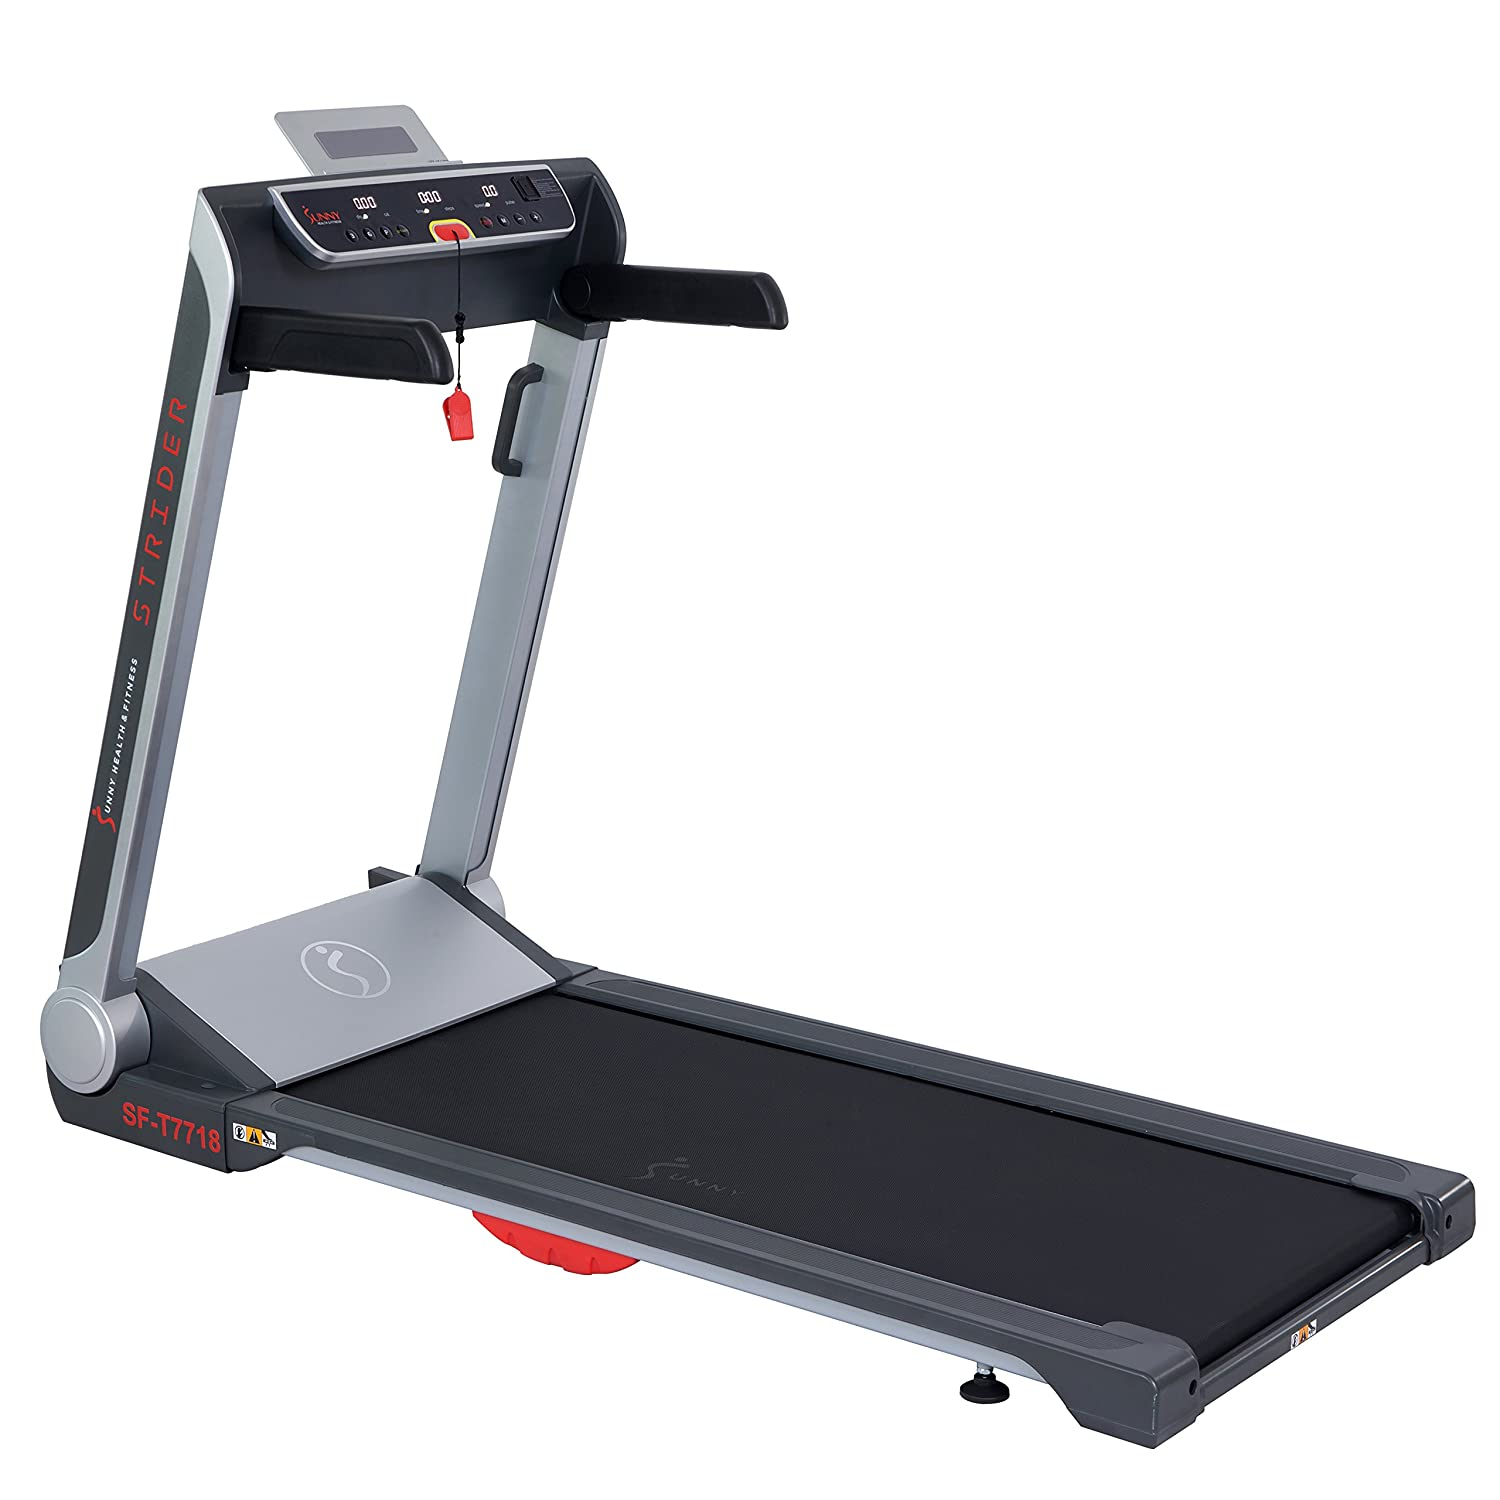 analyze the features that a treadmill cost 500 USD